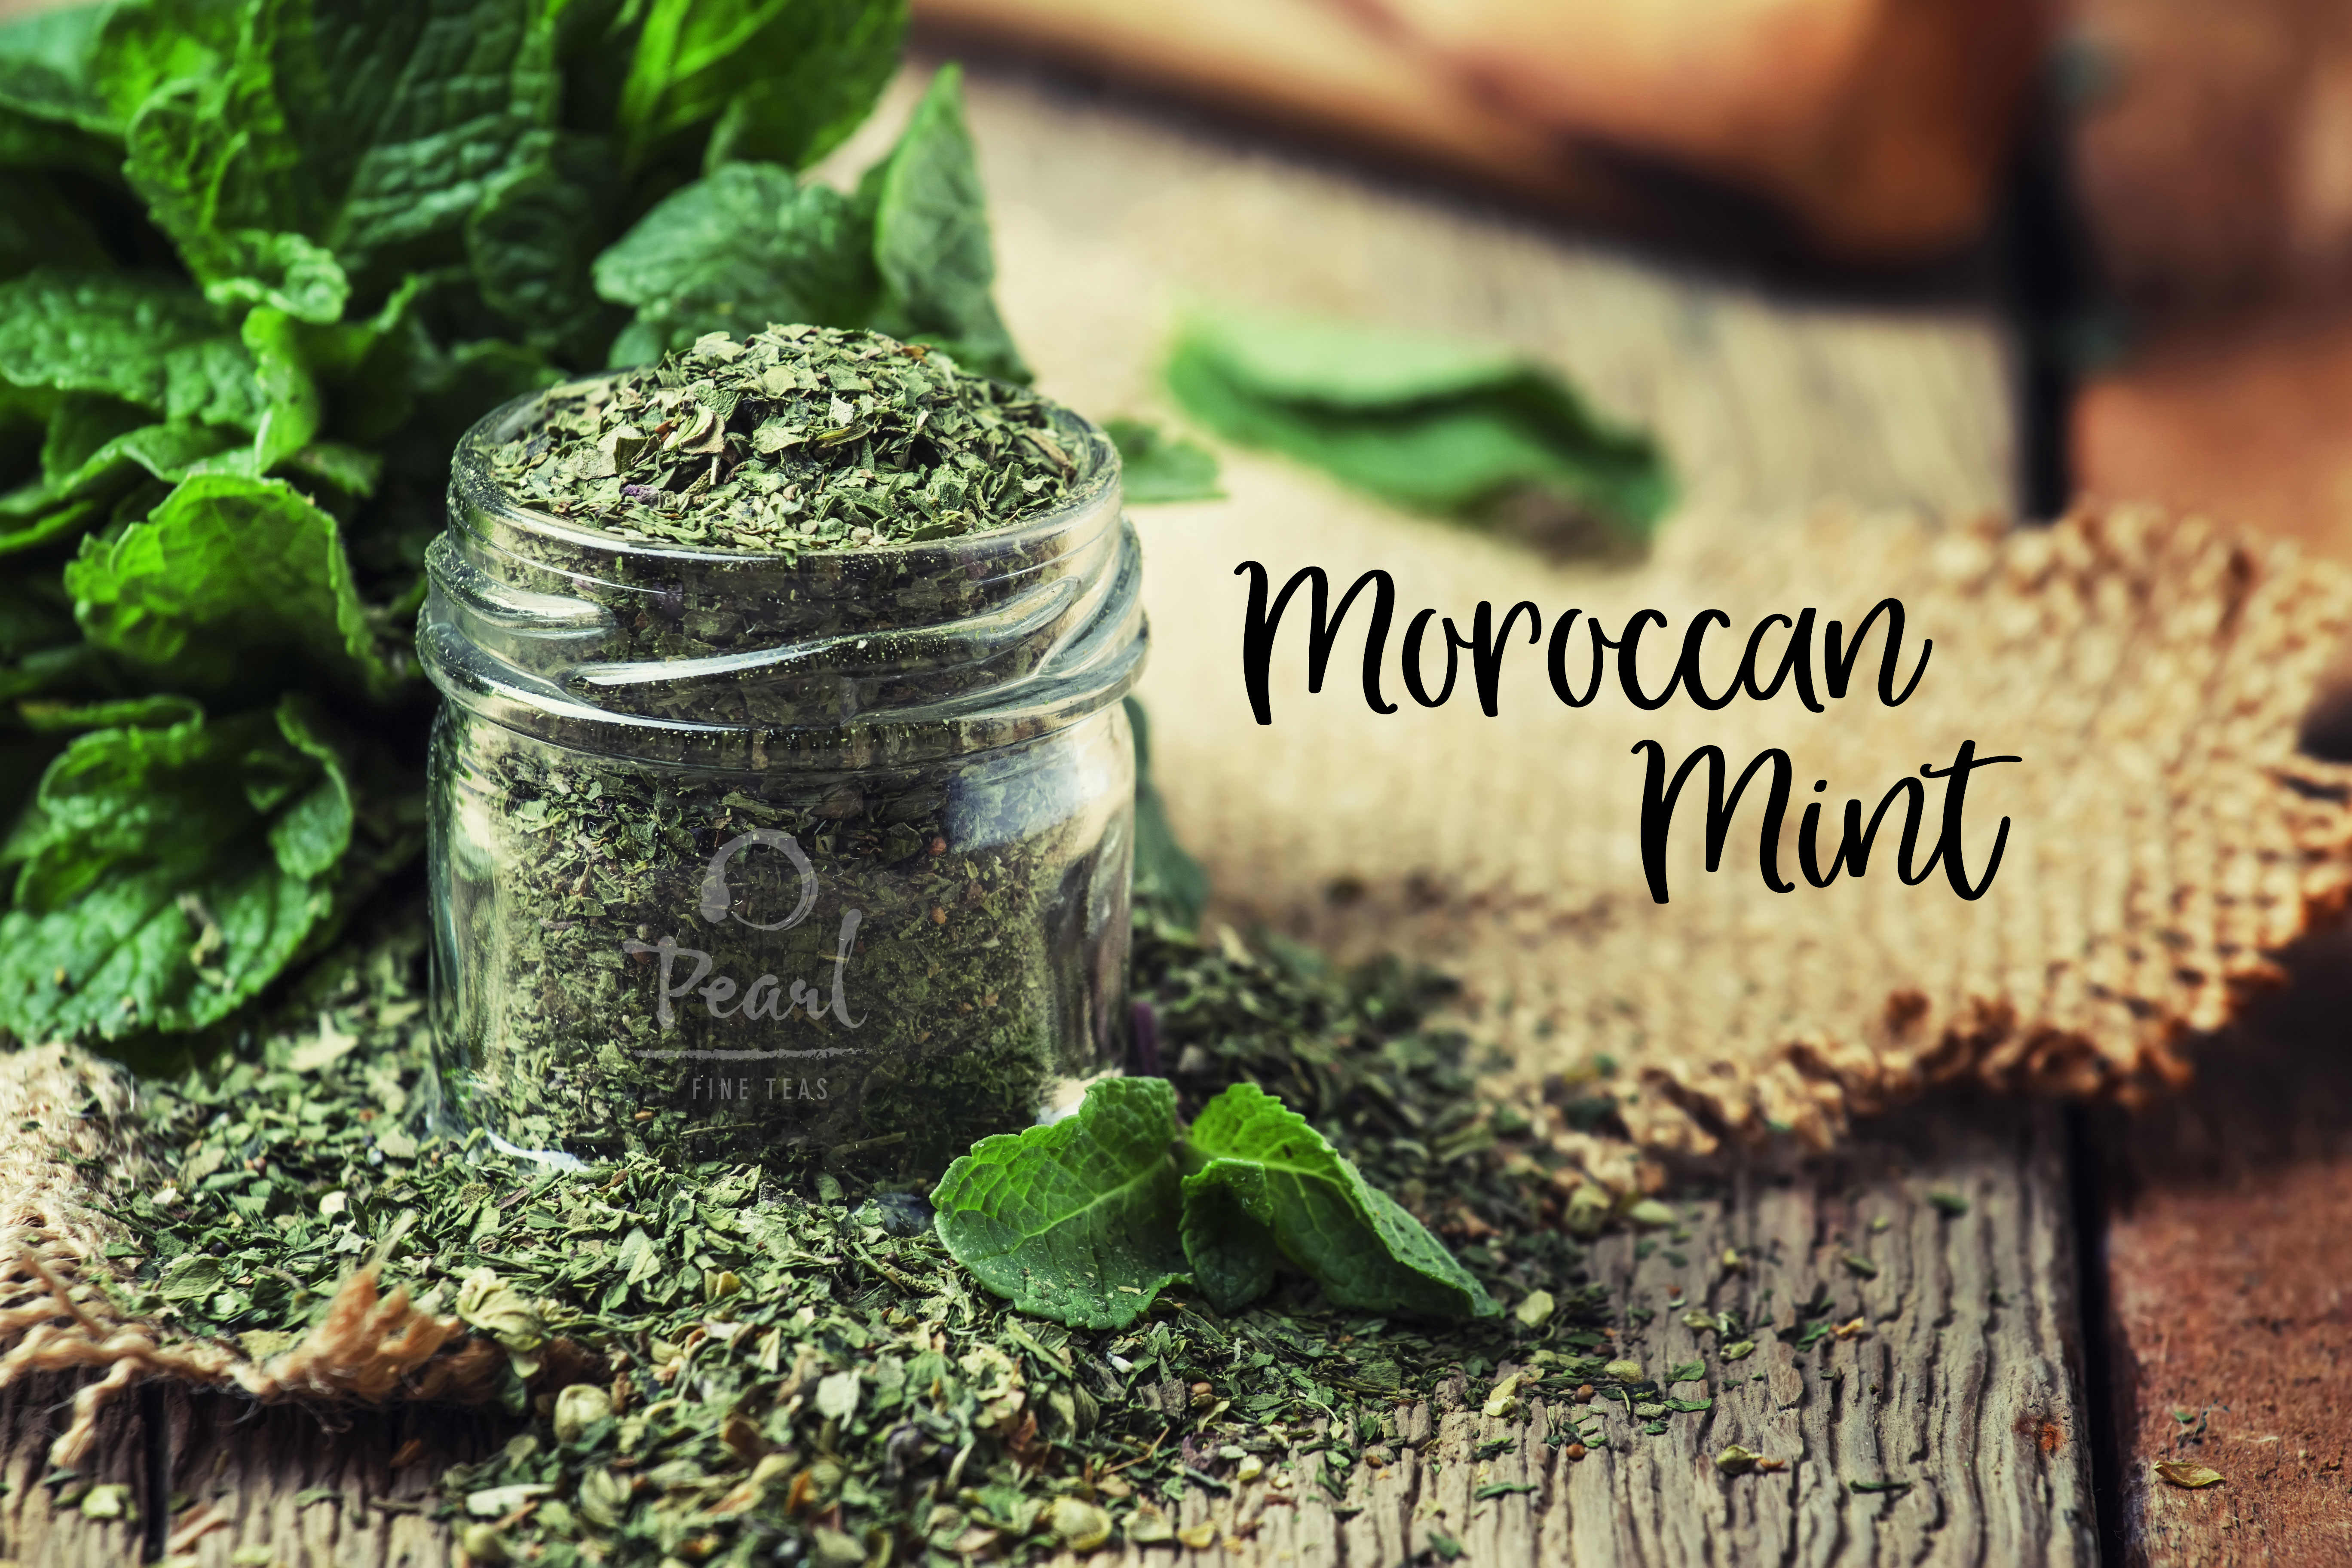 pearl_MoroccanMint